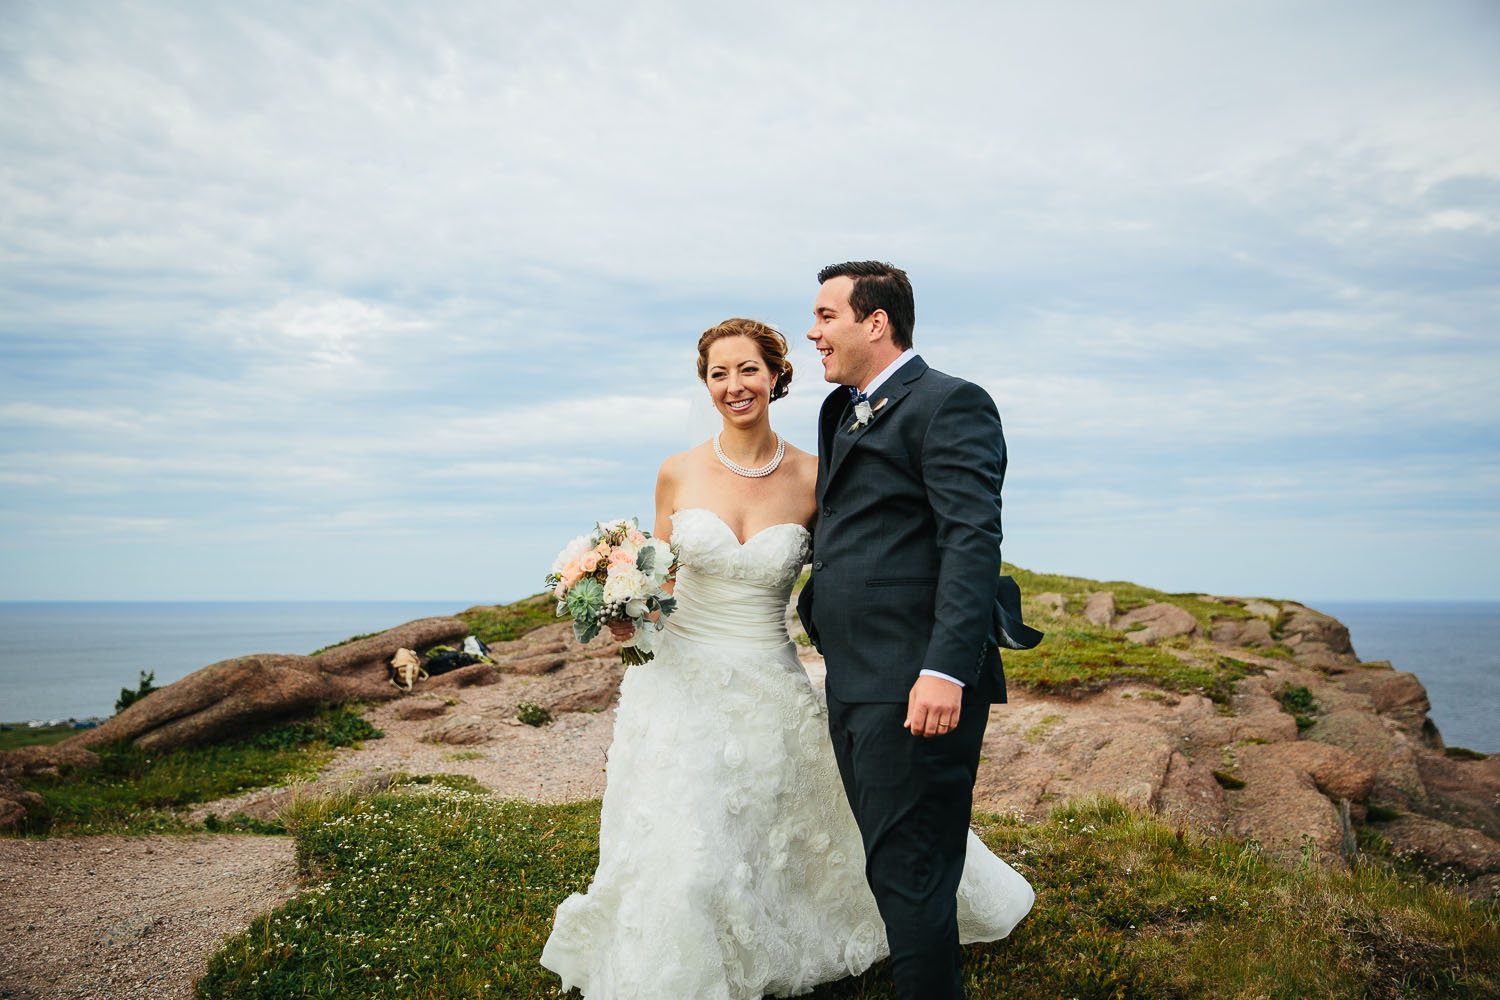 Thea-Chris-Cape-Spear-Wedding-Photography38